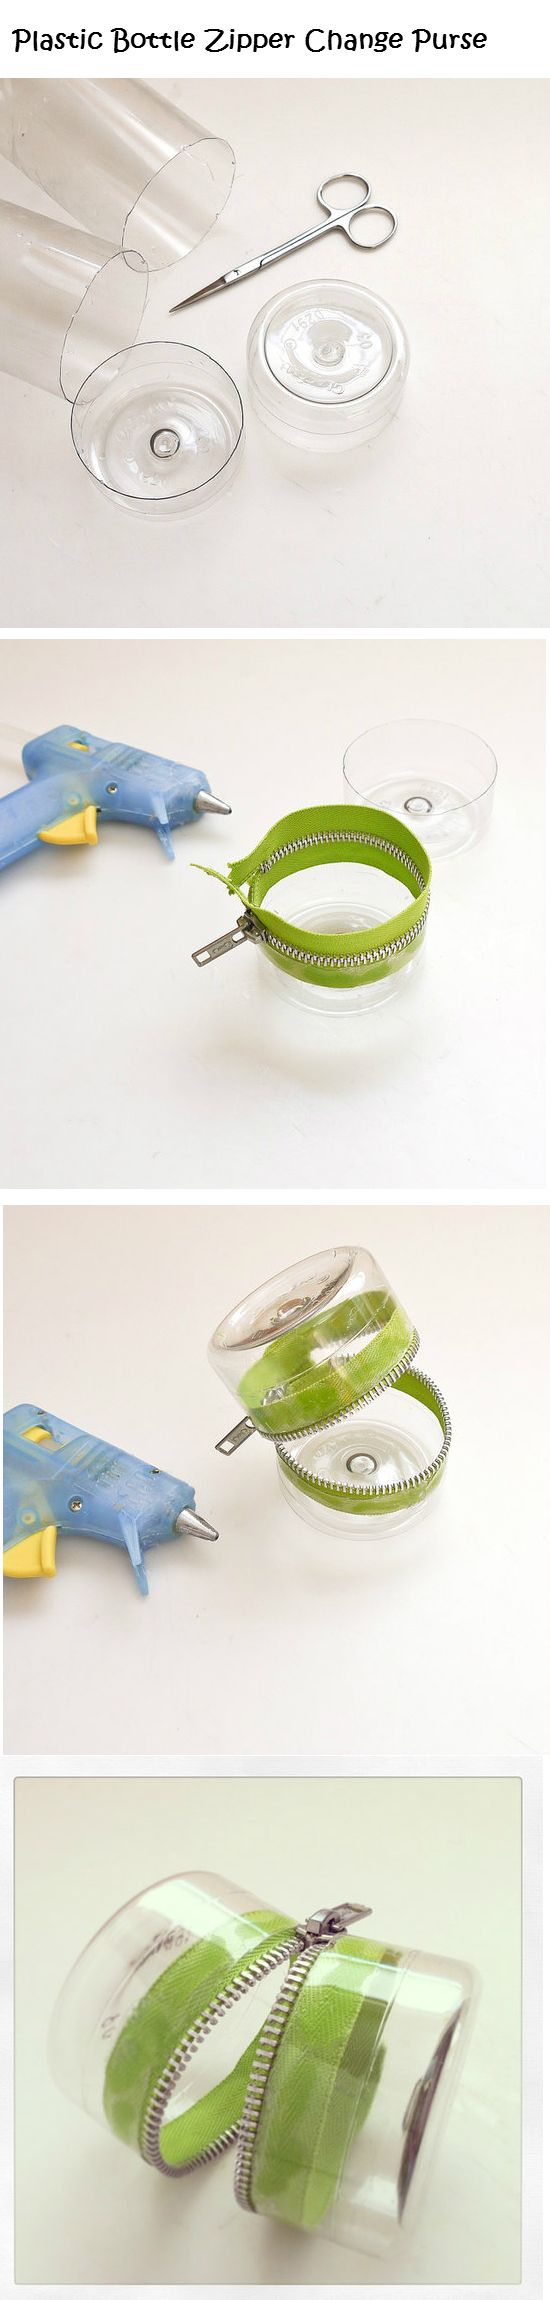 """Plastic Bottle Zipper Change Purse - So cute as a stocking stuffer. If you have D&D gamers. you can make these in """"guy"""" colors to hold gaming pieces, dice etc.,. You can even make kits. There are mini mani sets and make-up for the girls! Or how about earbuds, a memory card and/or a cable for the techies?"""